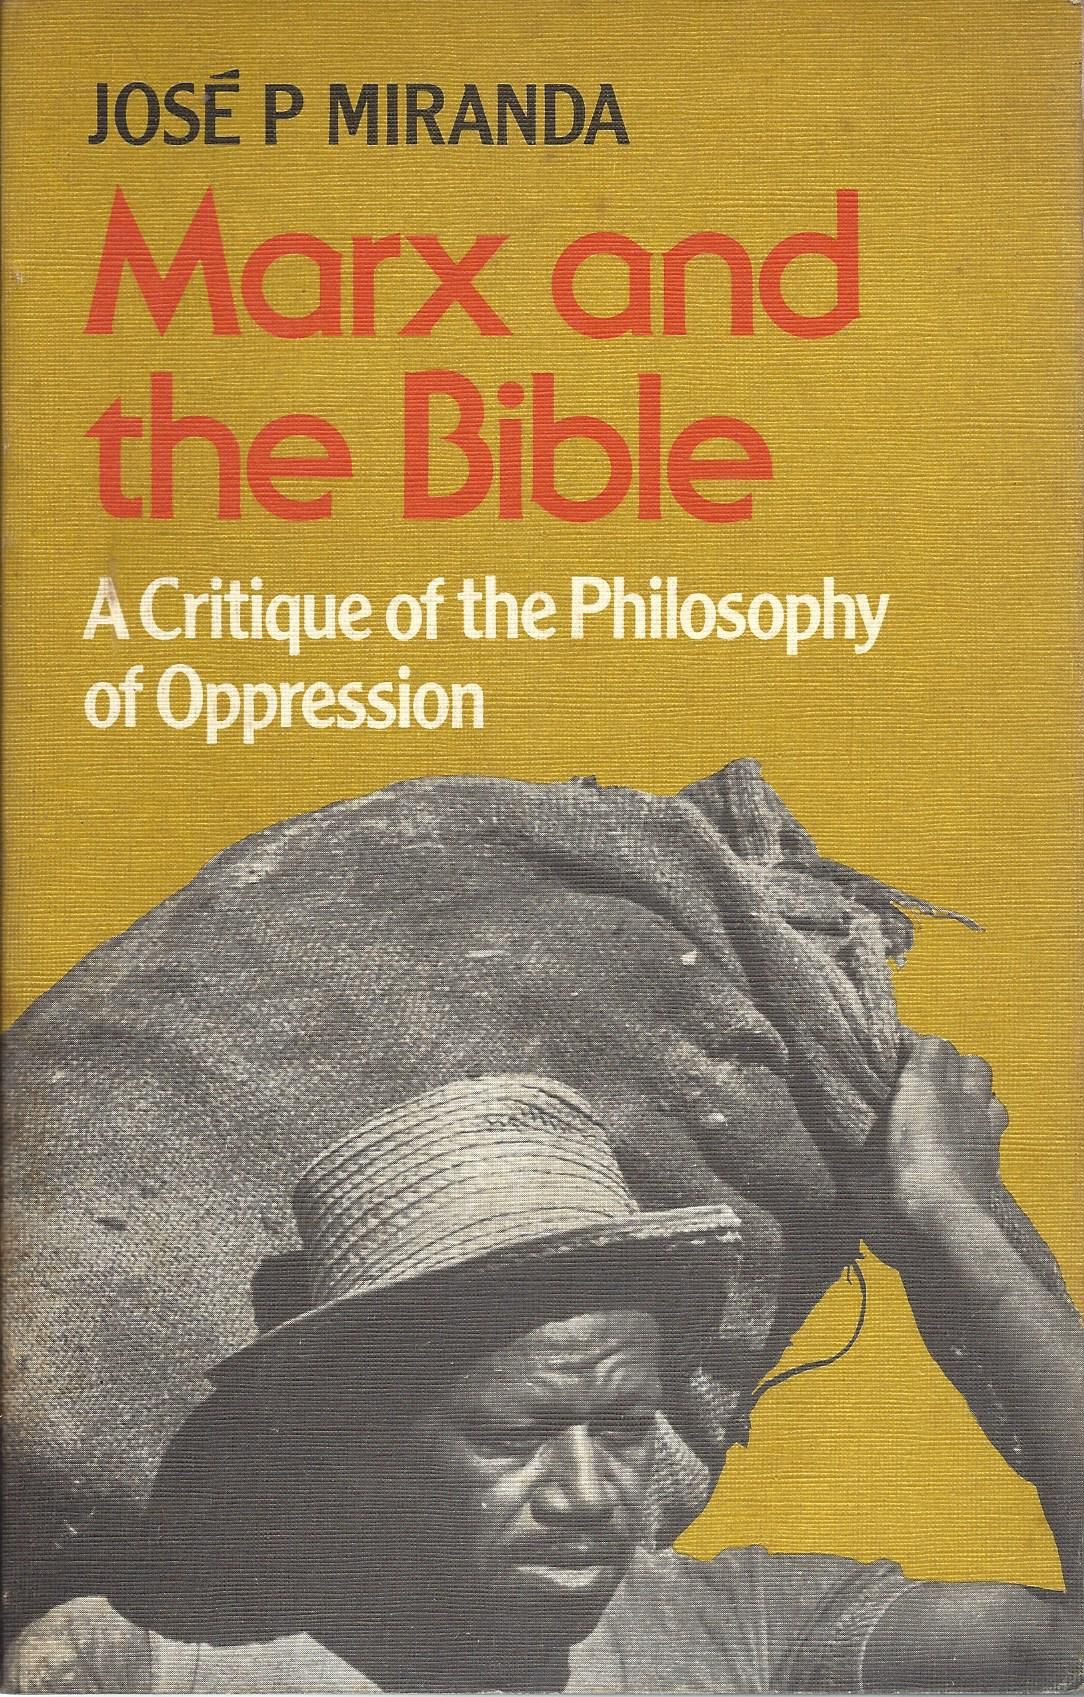 Marx and the Bible 1977 published by SCM